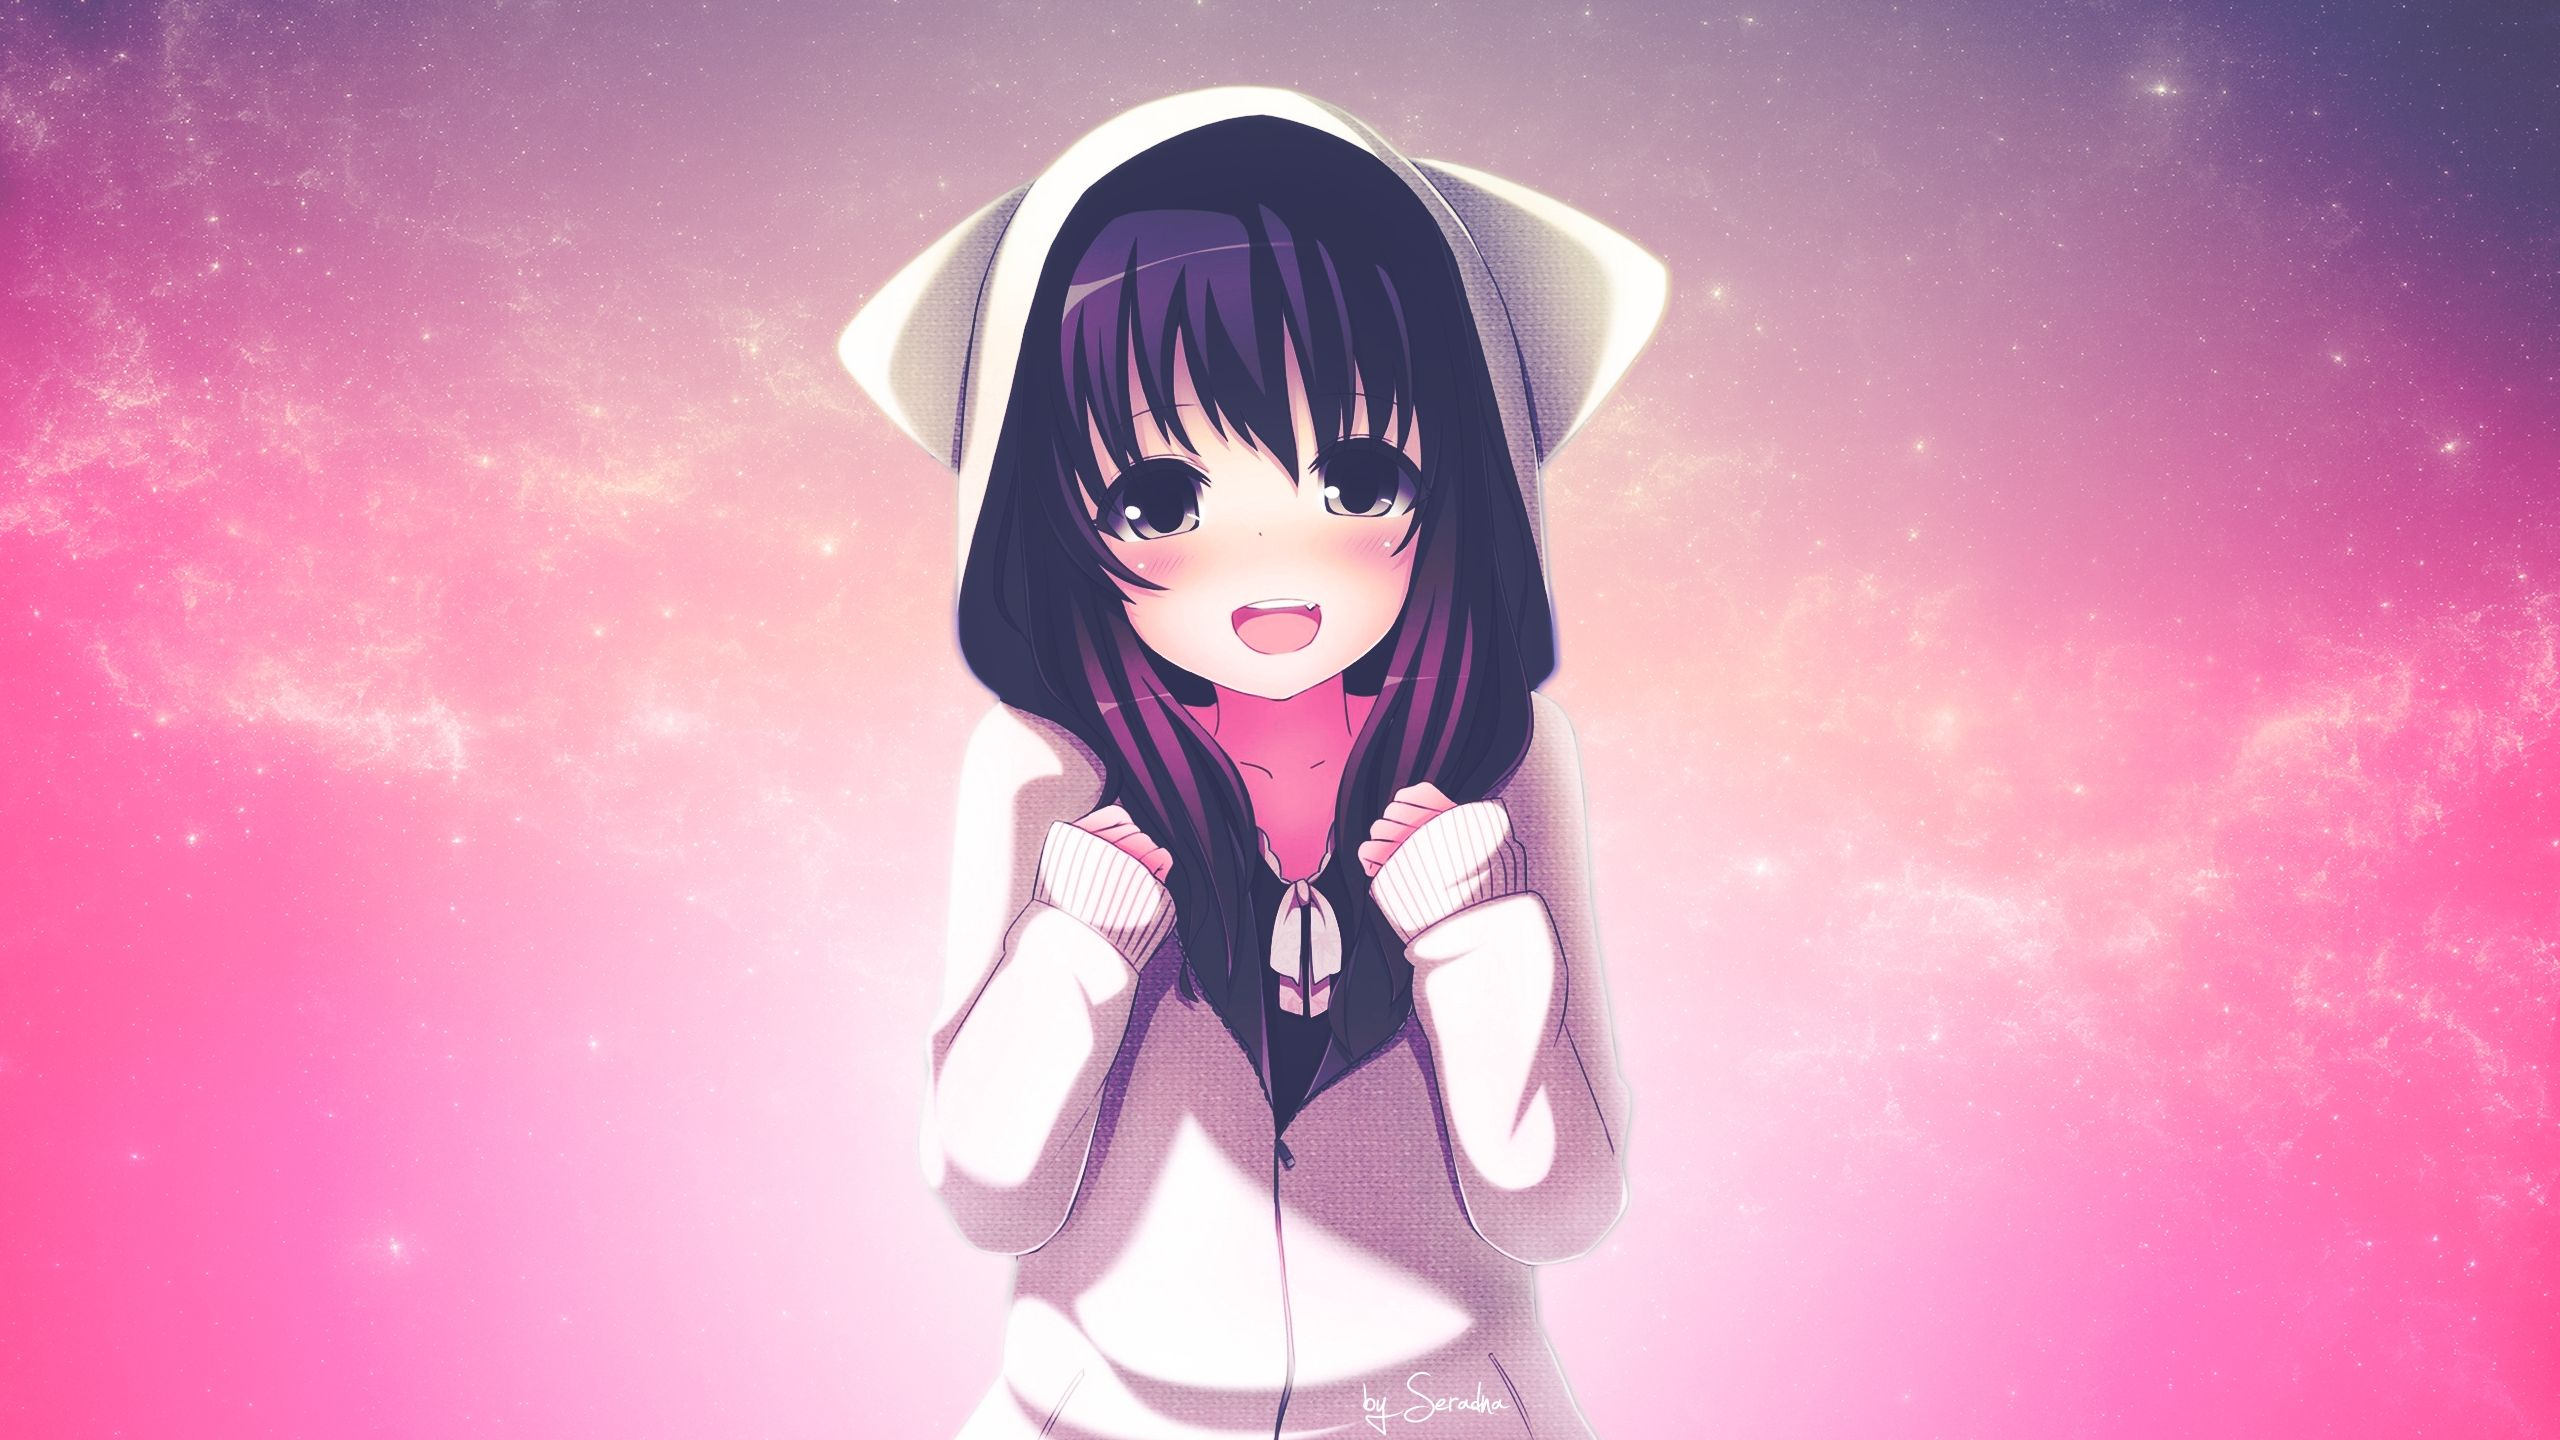 Anime Cute Kawaii Wallpaper HD 4k